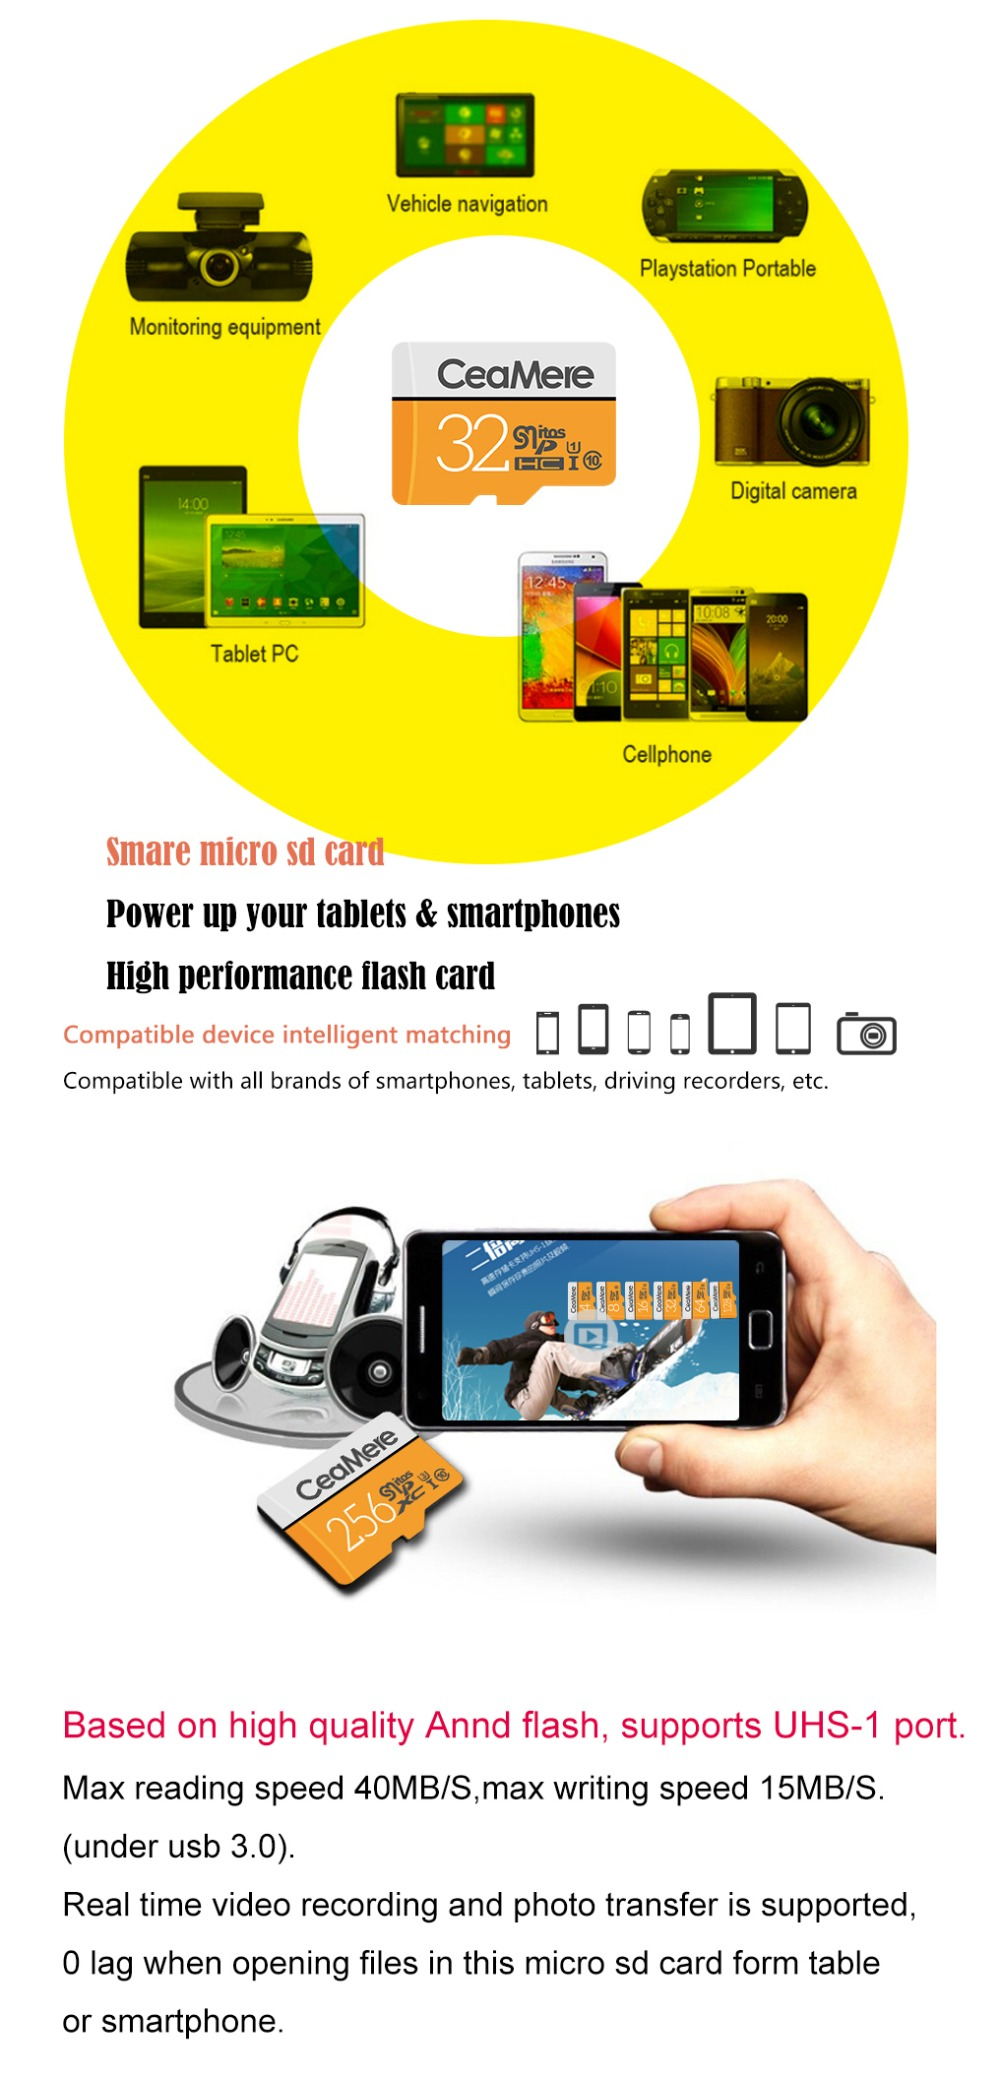 SMARE Micro SD Card 256GB/128GB/64GB UHS-3 32GB/16GB/8GB Class 10 UHS-1 4GB Memory Card Flash Memory Microsd Free Crad Reader 8